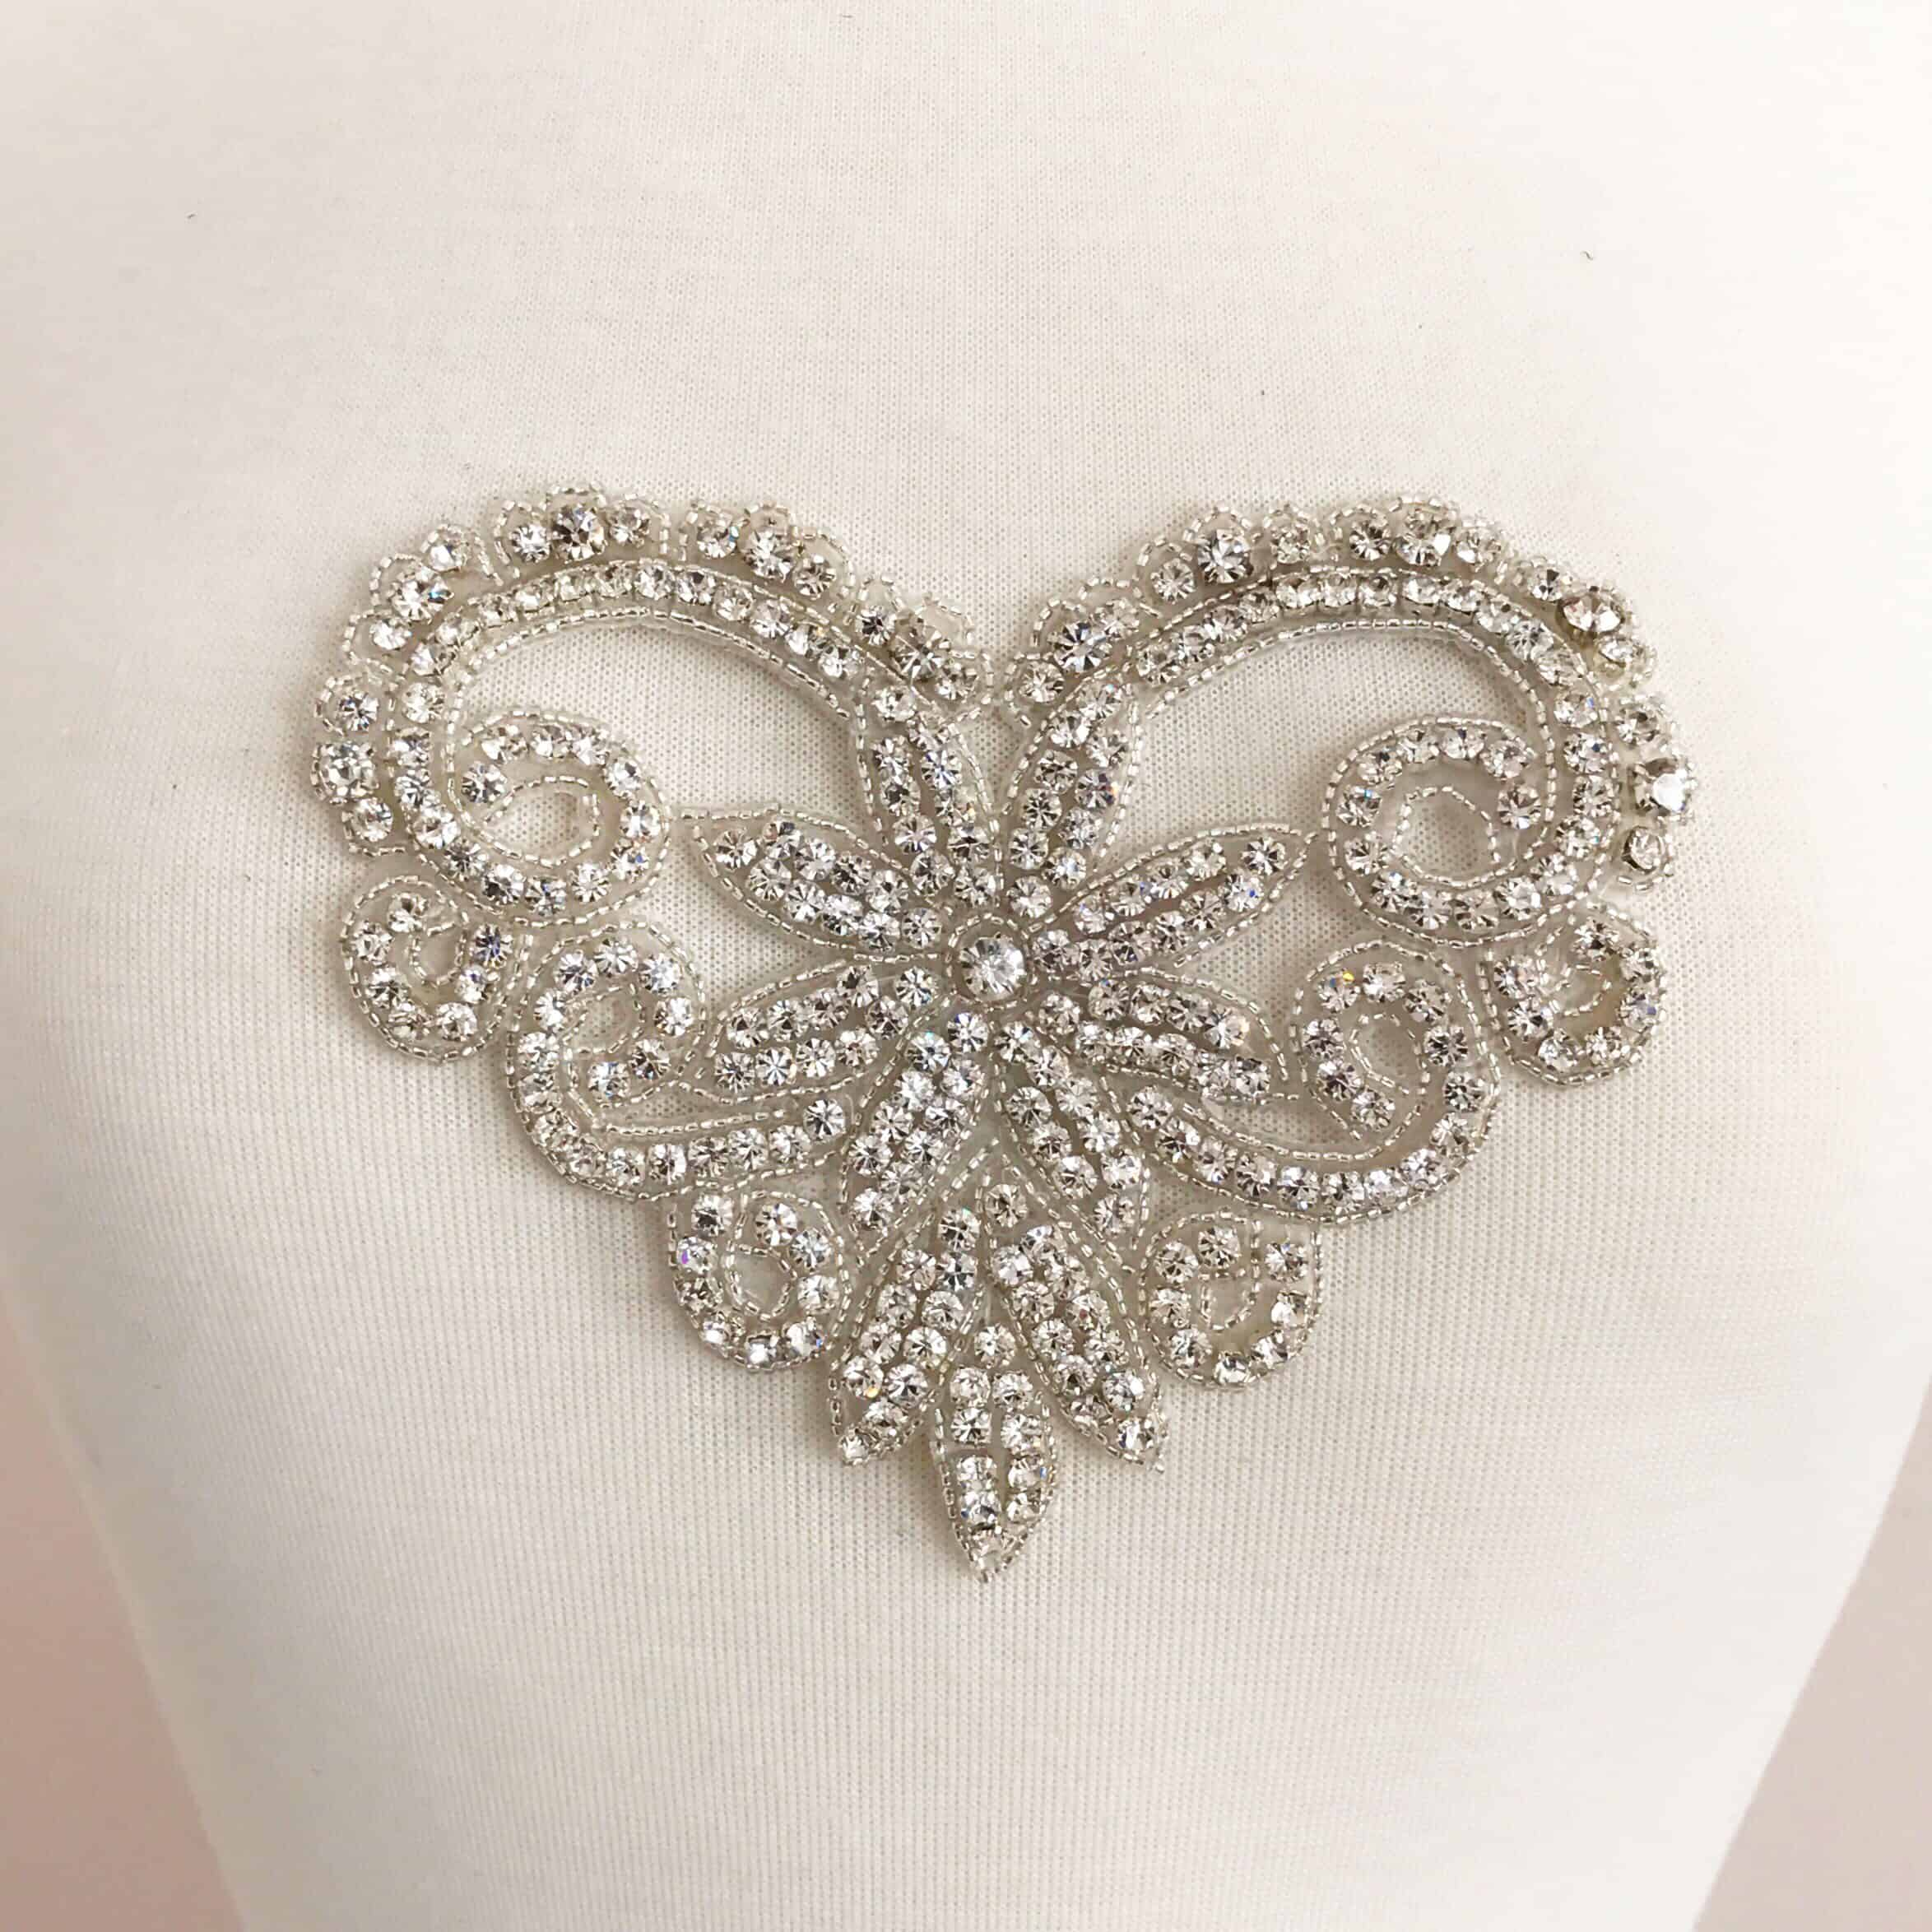 Rhinestone Sweetheart Applique